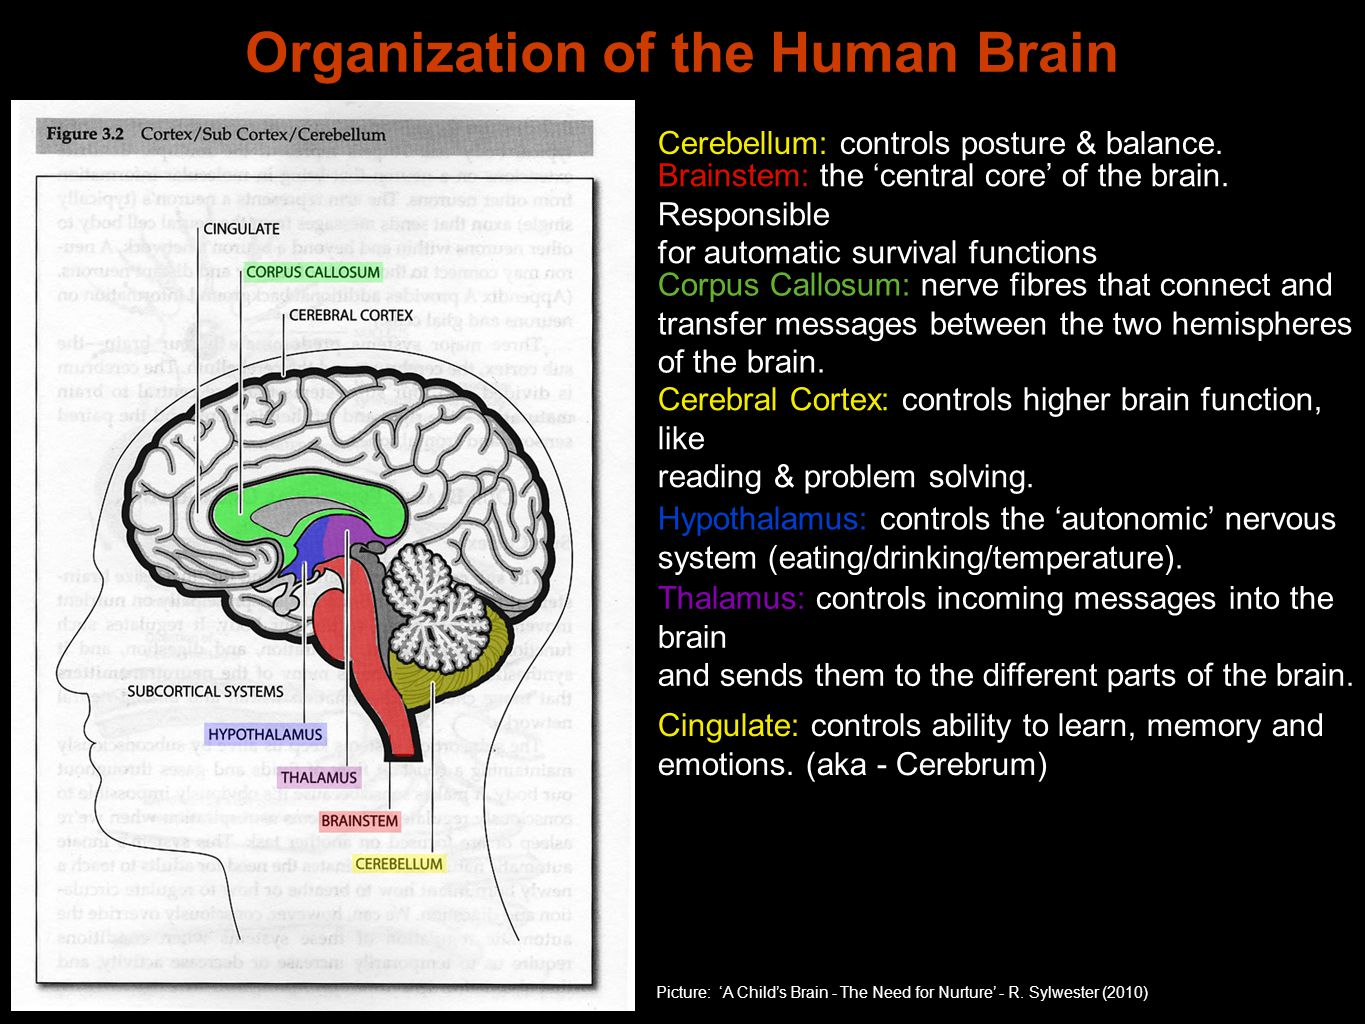 Organization of the Human Brain Picture: 'A Child's Brain - The Need for Nurture' - R. Sylwester (2010) Cerebellum: controls posture & balance. Brains